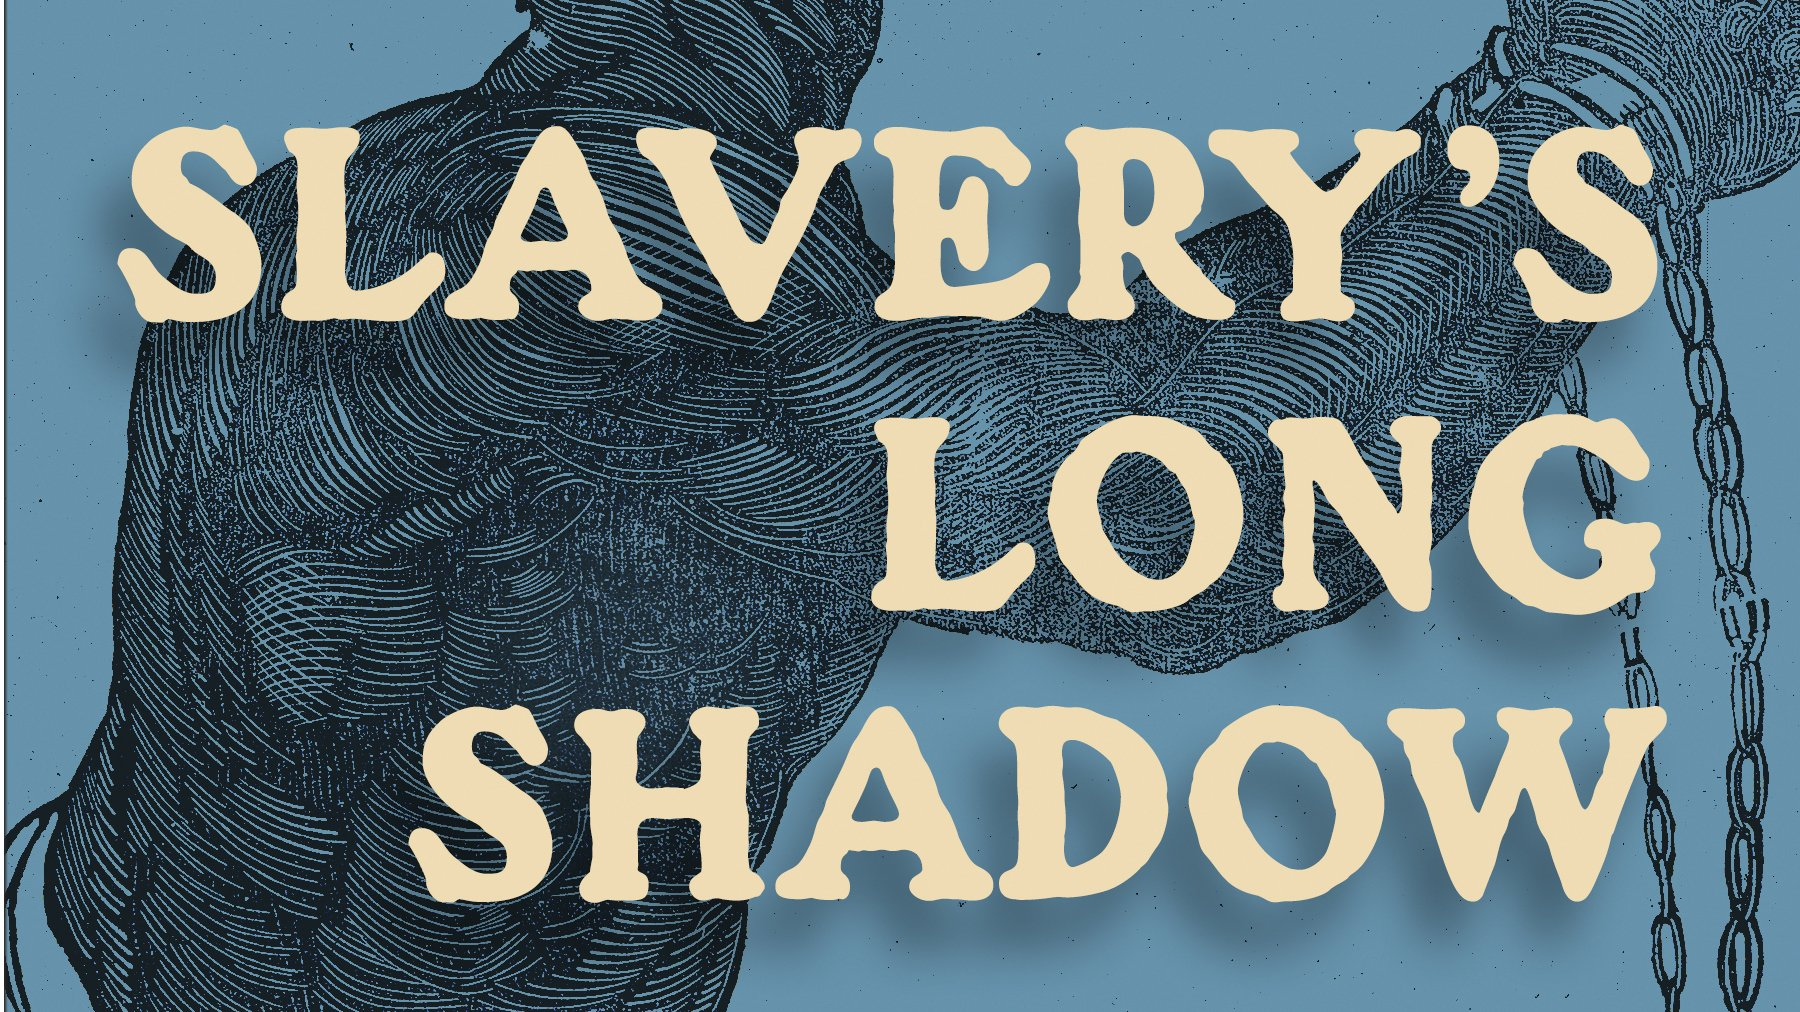 Meet This Book: Slavery's Long Shadow